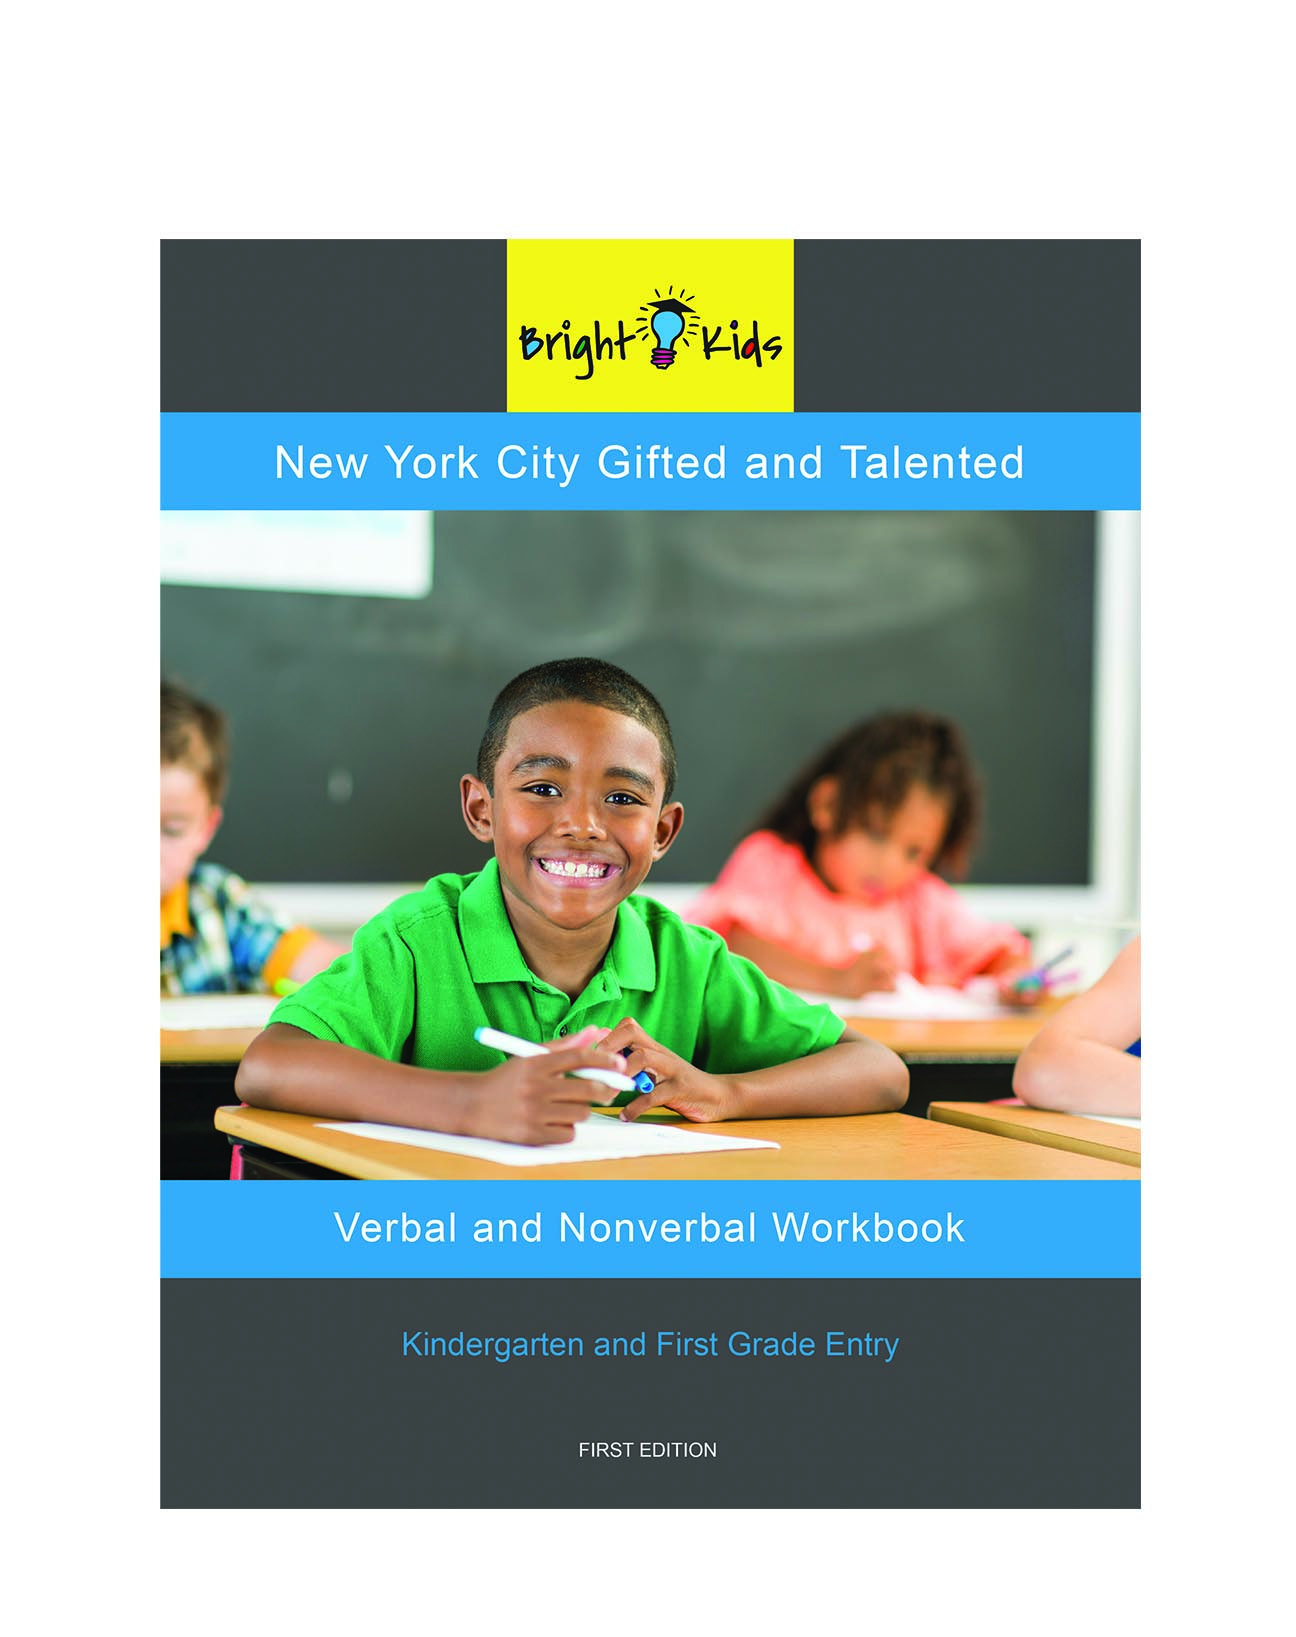 Bright Kids NYC Releases New Gifted And Talented Workbook